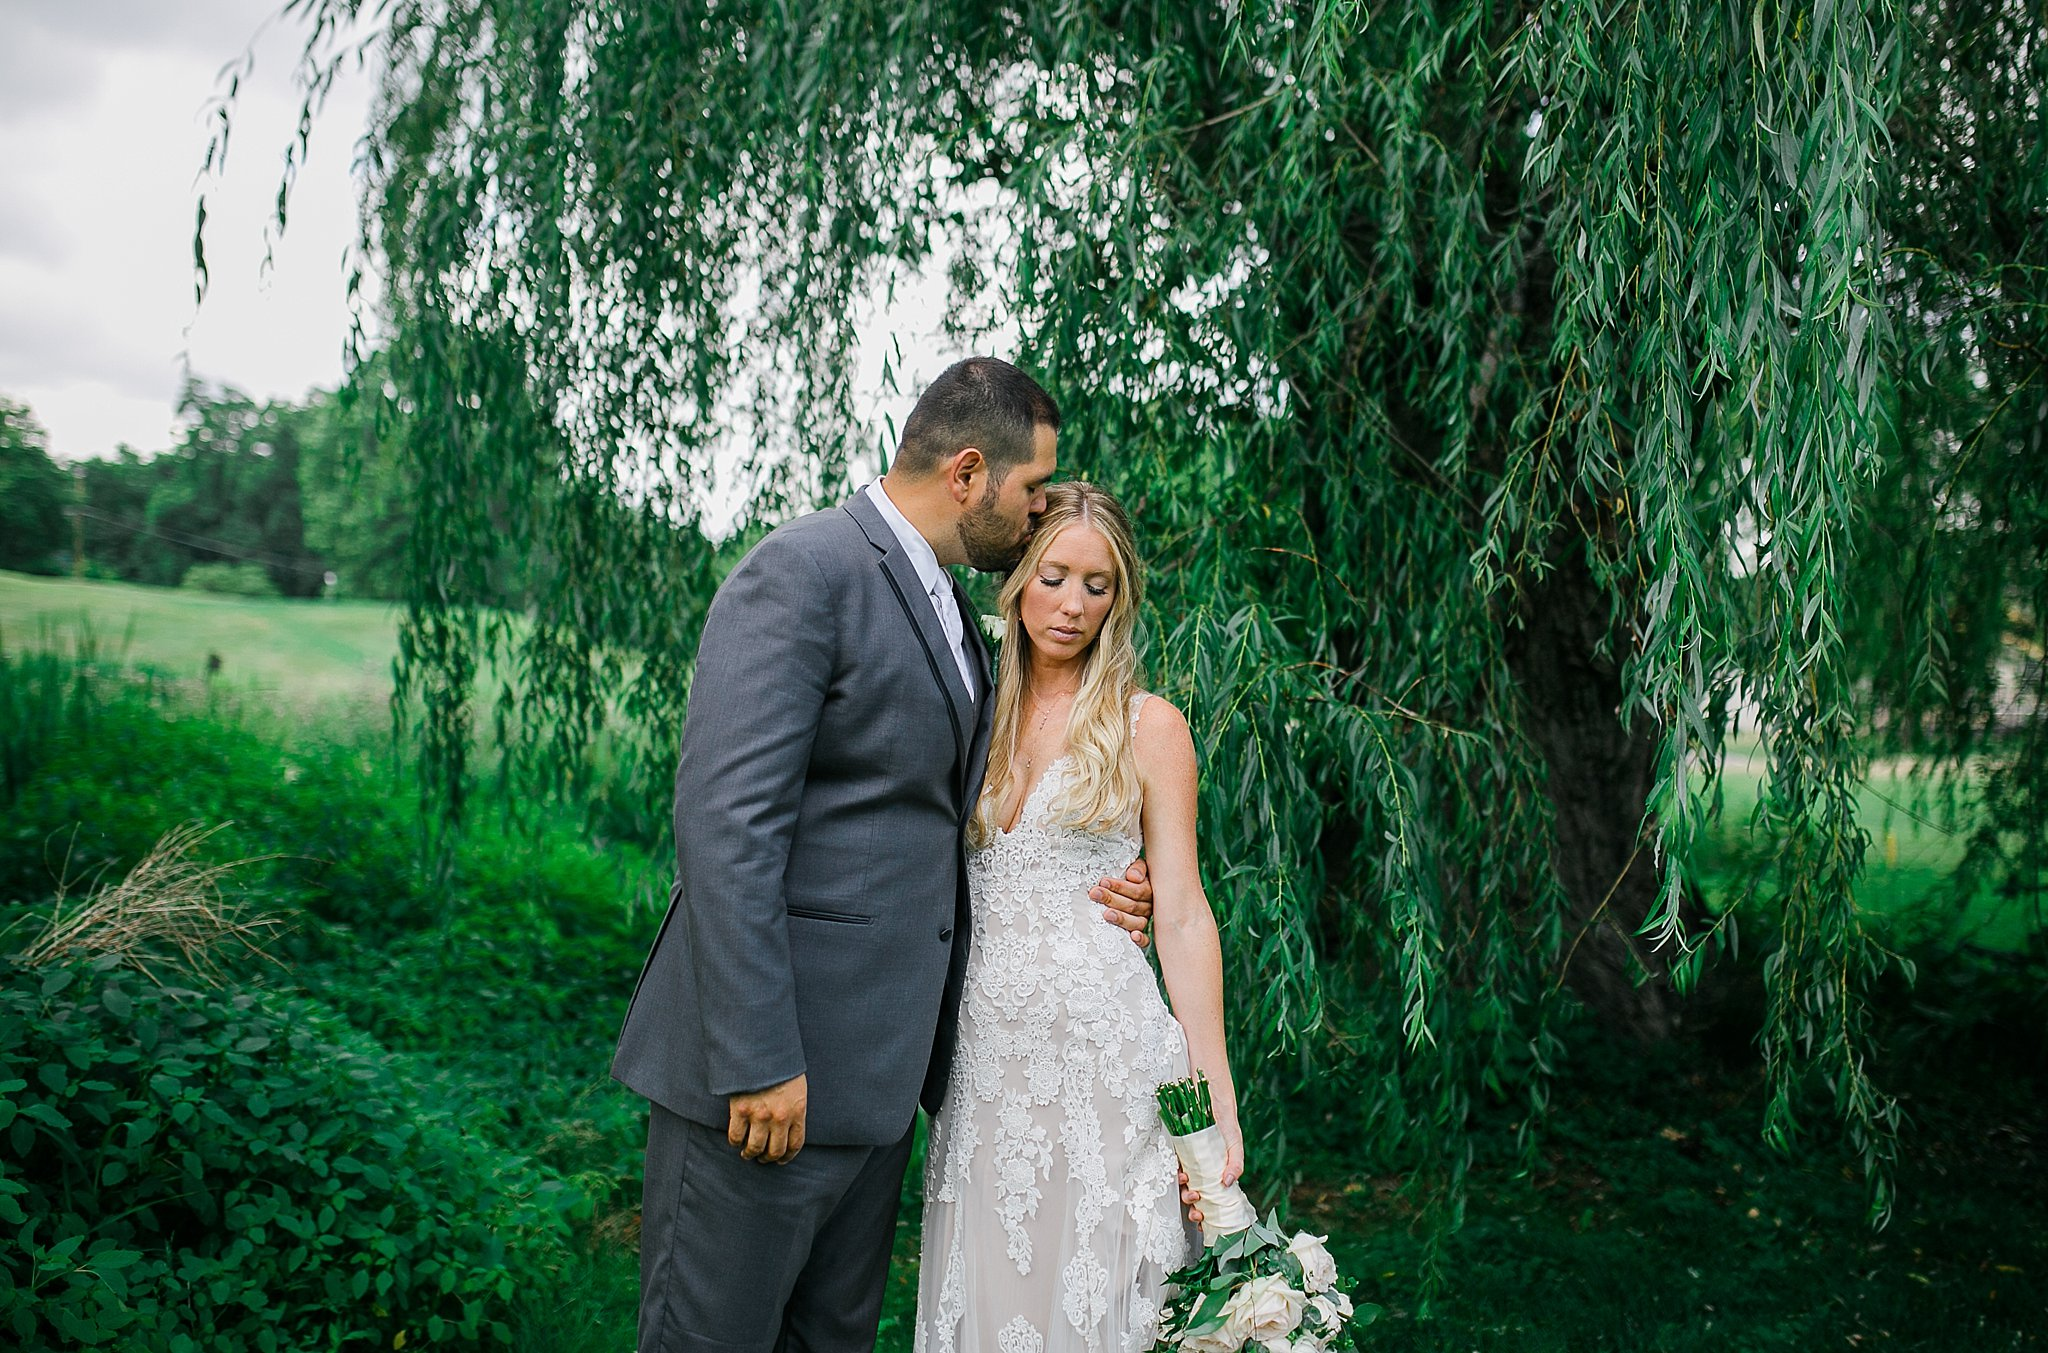 West Hills Country Club Wedding July Wedding Hudson Valley Wedding Hudson Valley Wedding Photographer Sweet Alice Photography35.jpg